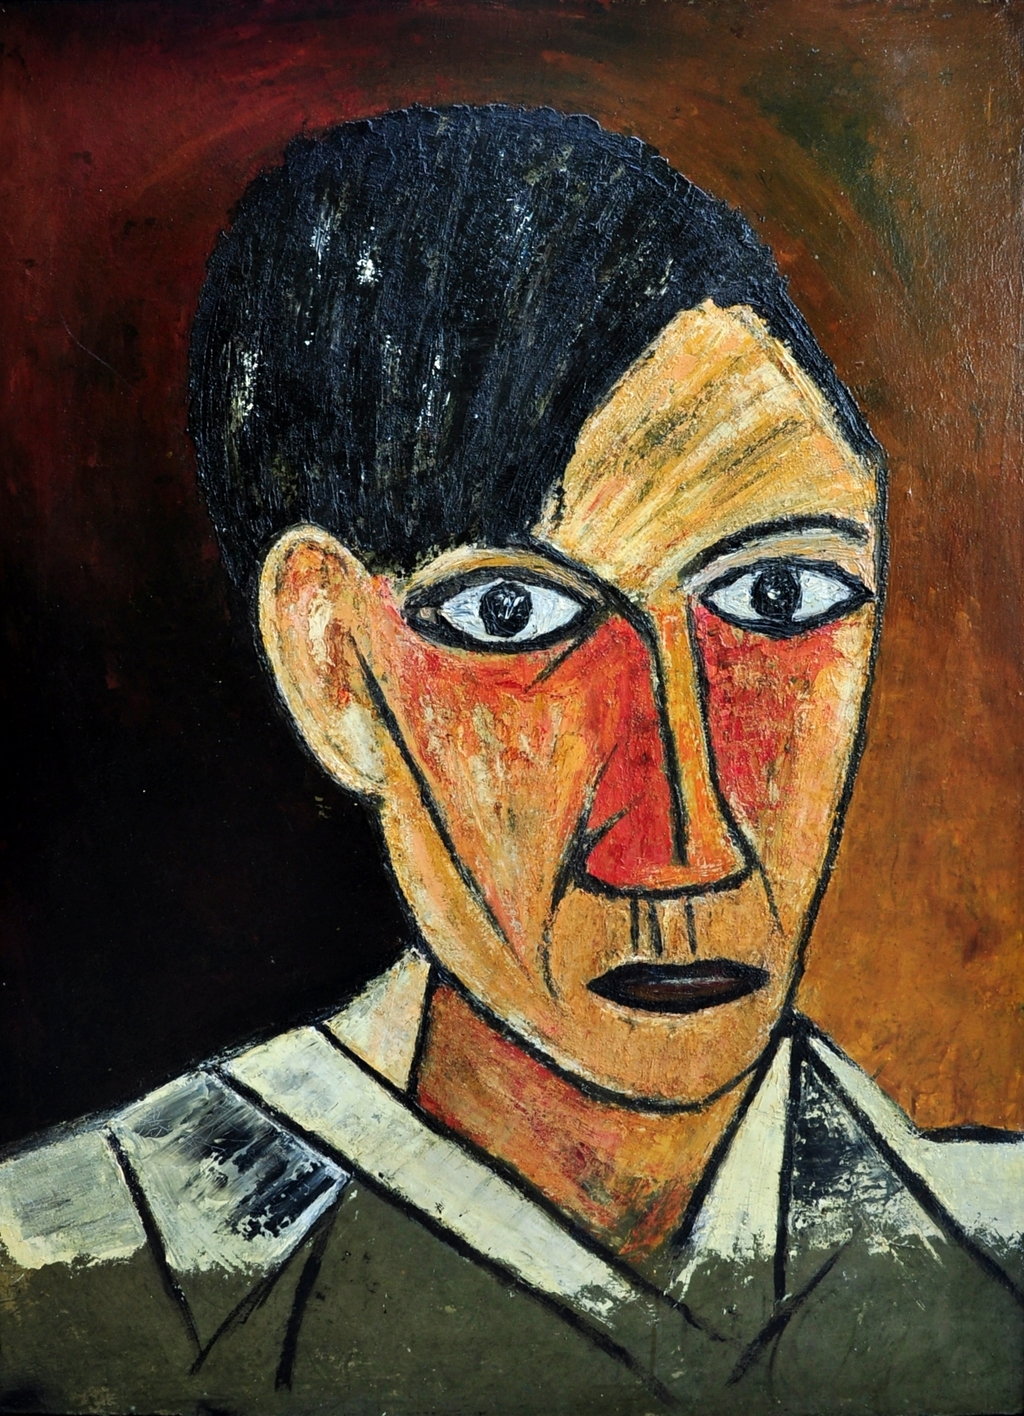 Young Picasso paintings